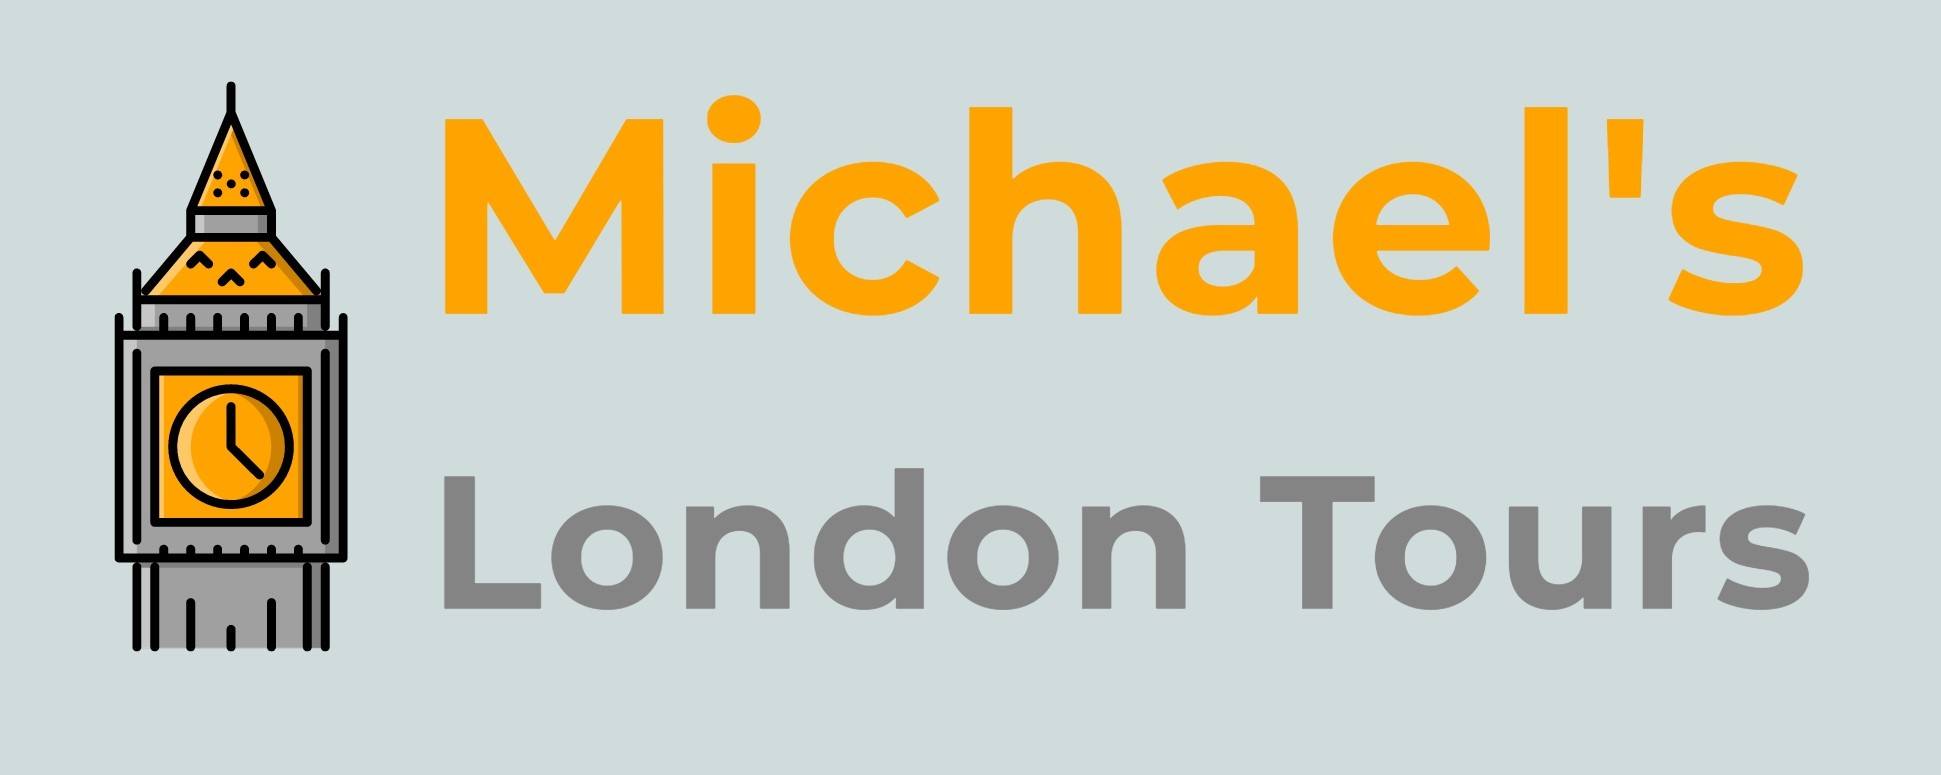 Discover London with Michael